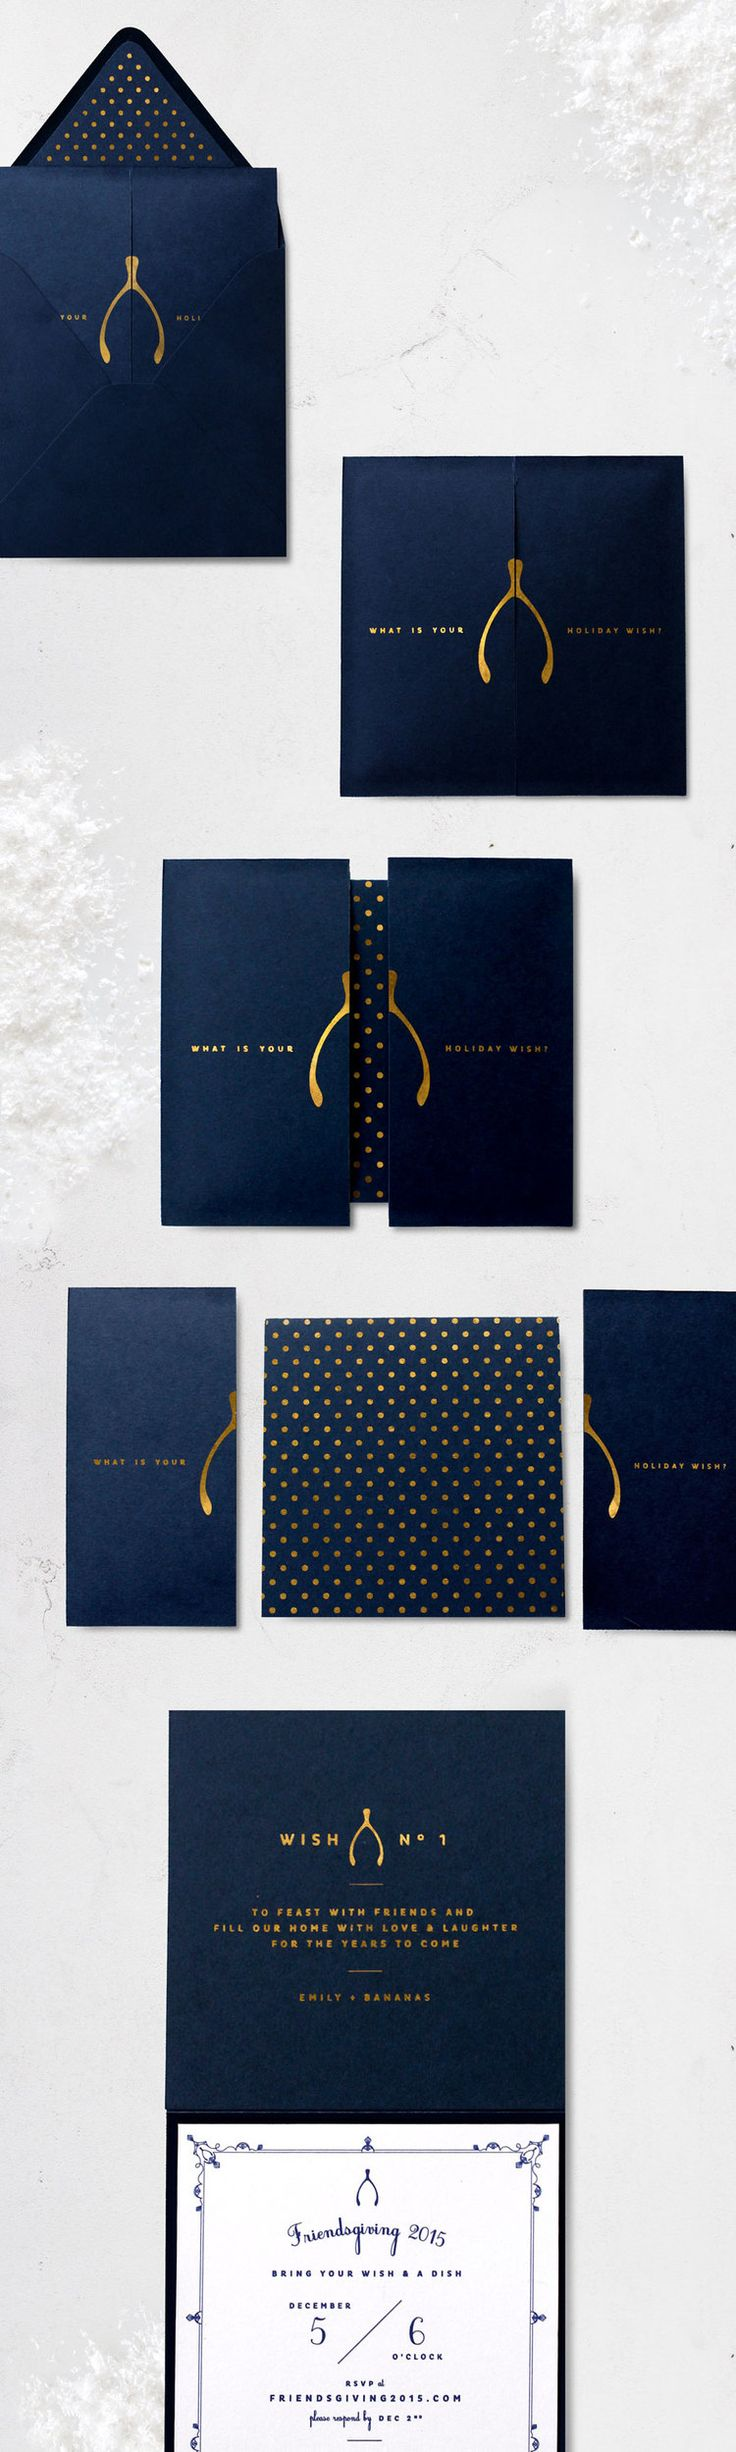 Navy, White & Gold Wishbone Invitation | Friendsgiving 2015 | Sugar & Gold